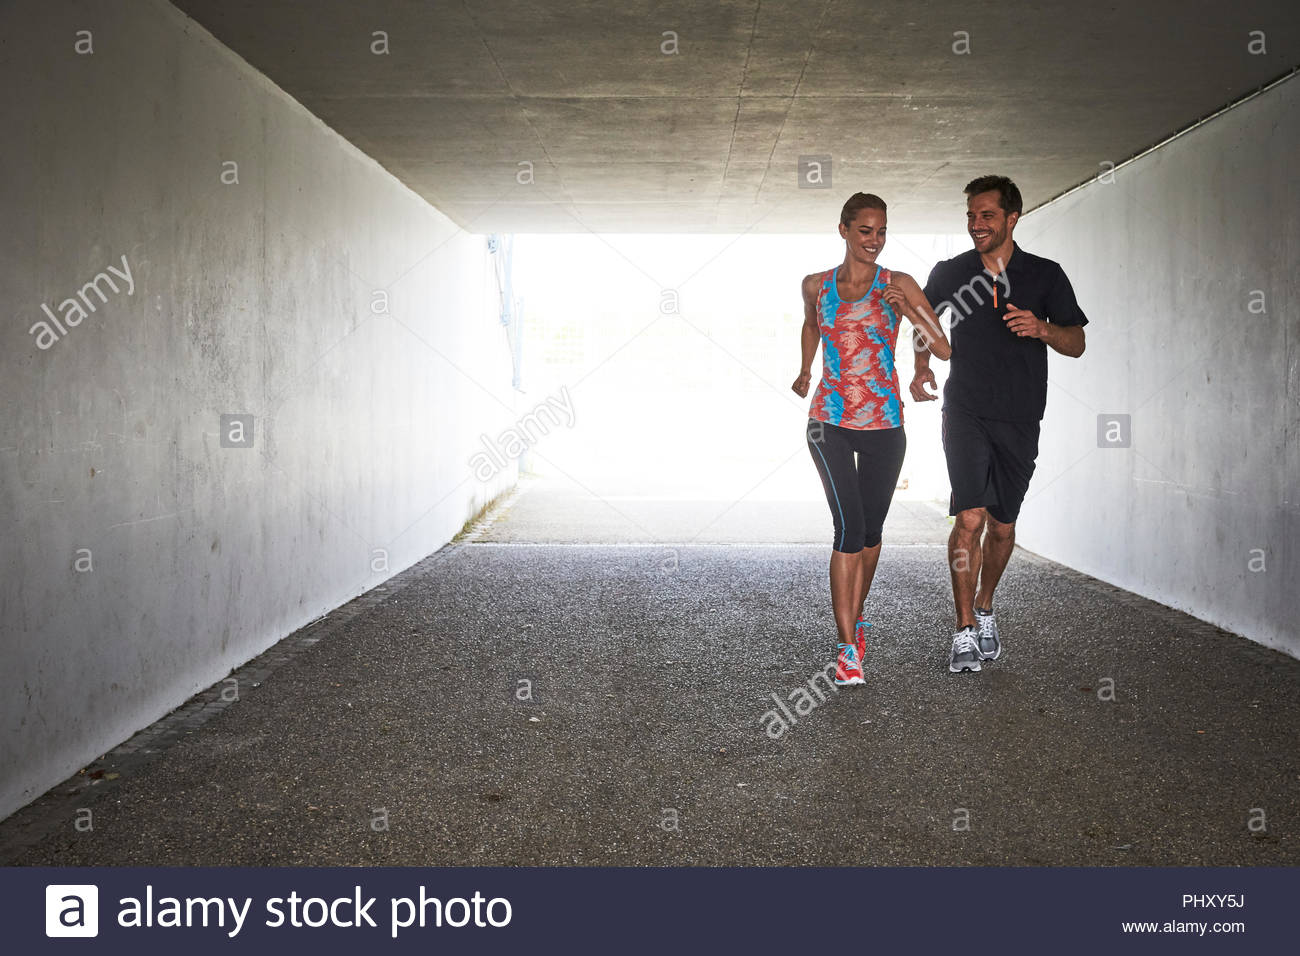 Young couple jogging in tunnel - Stock Image